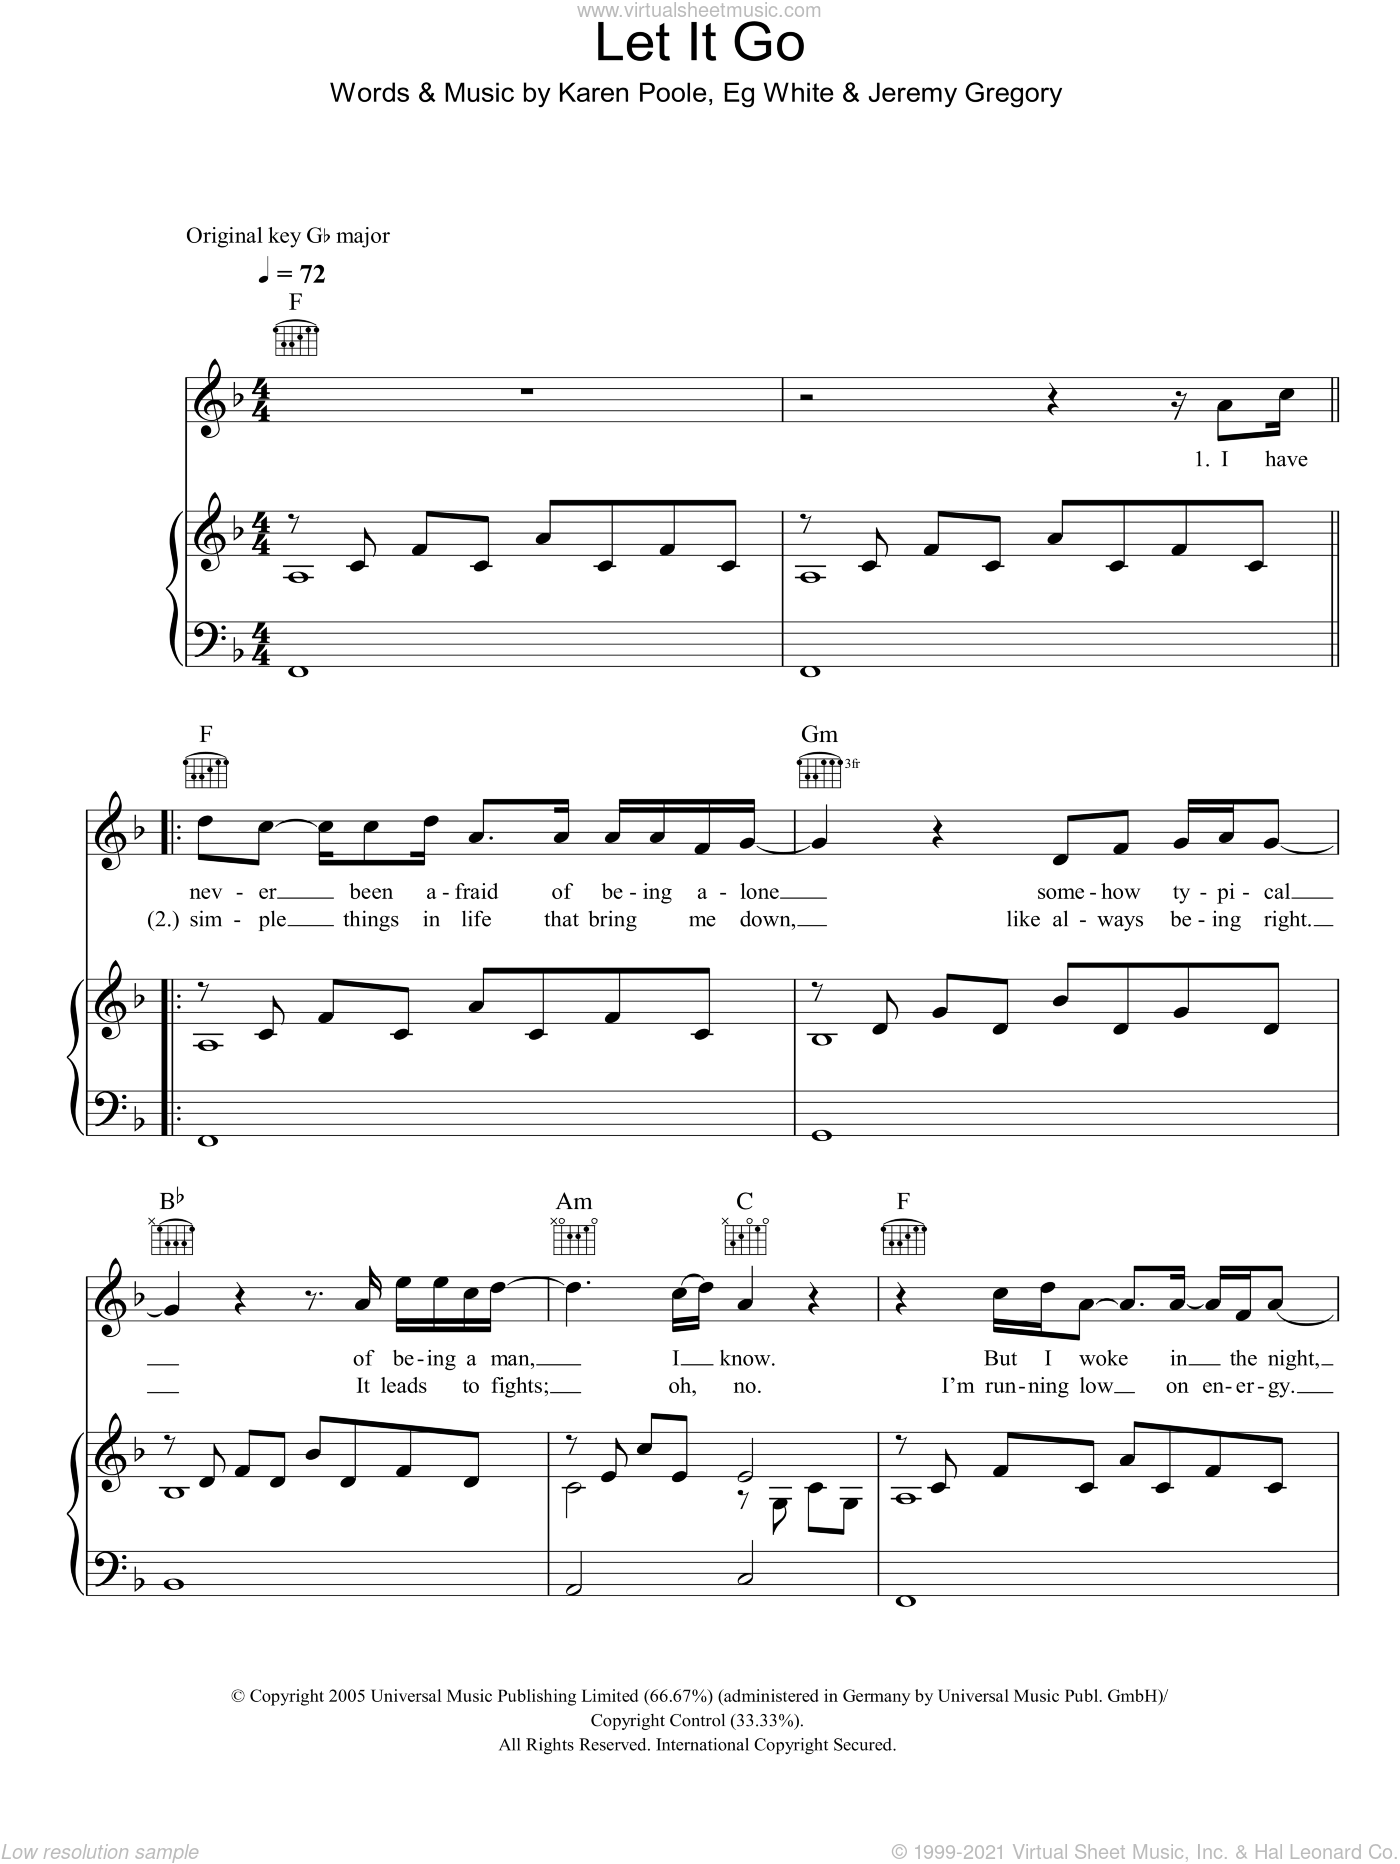 Let It Go sheet music for voice, piano or guitar by Eg White